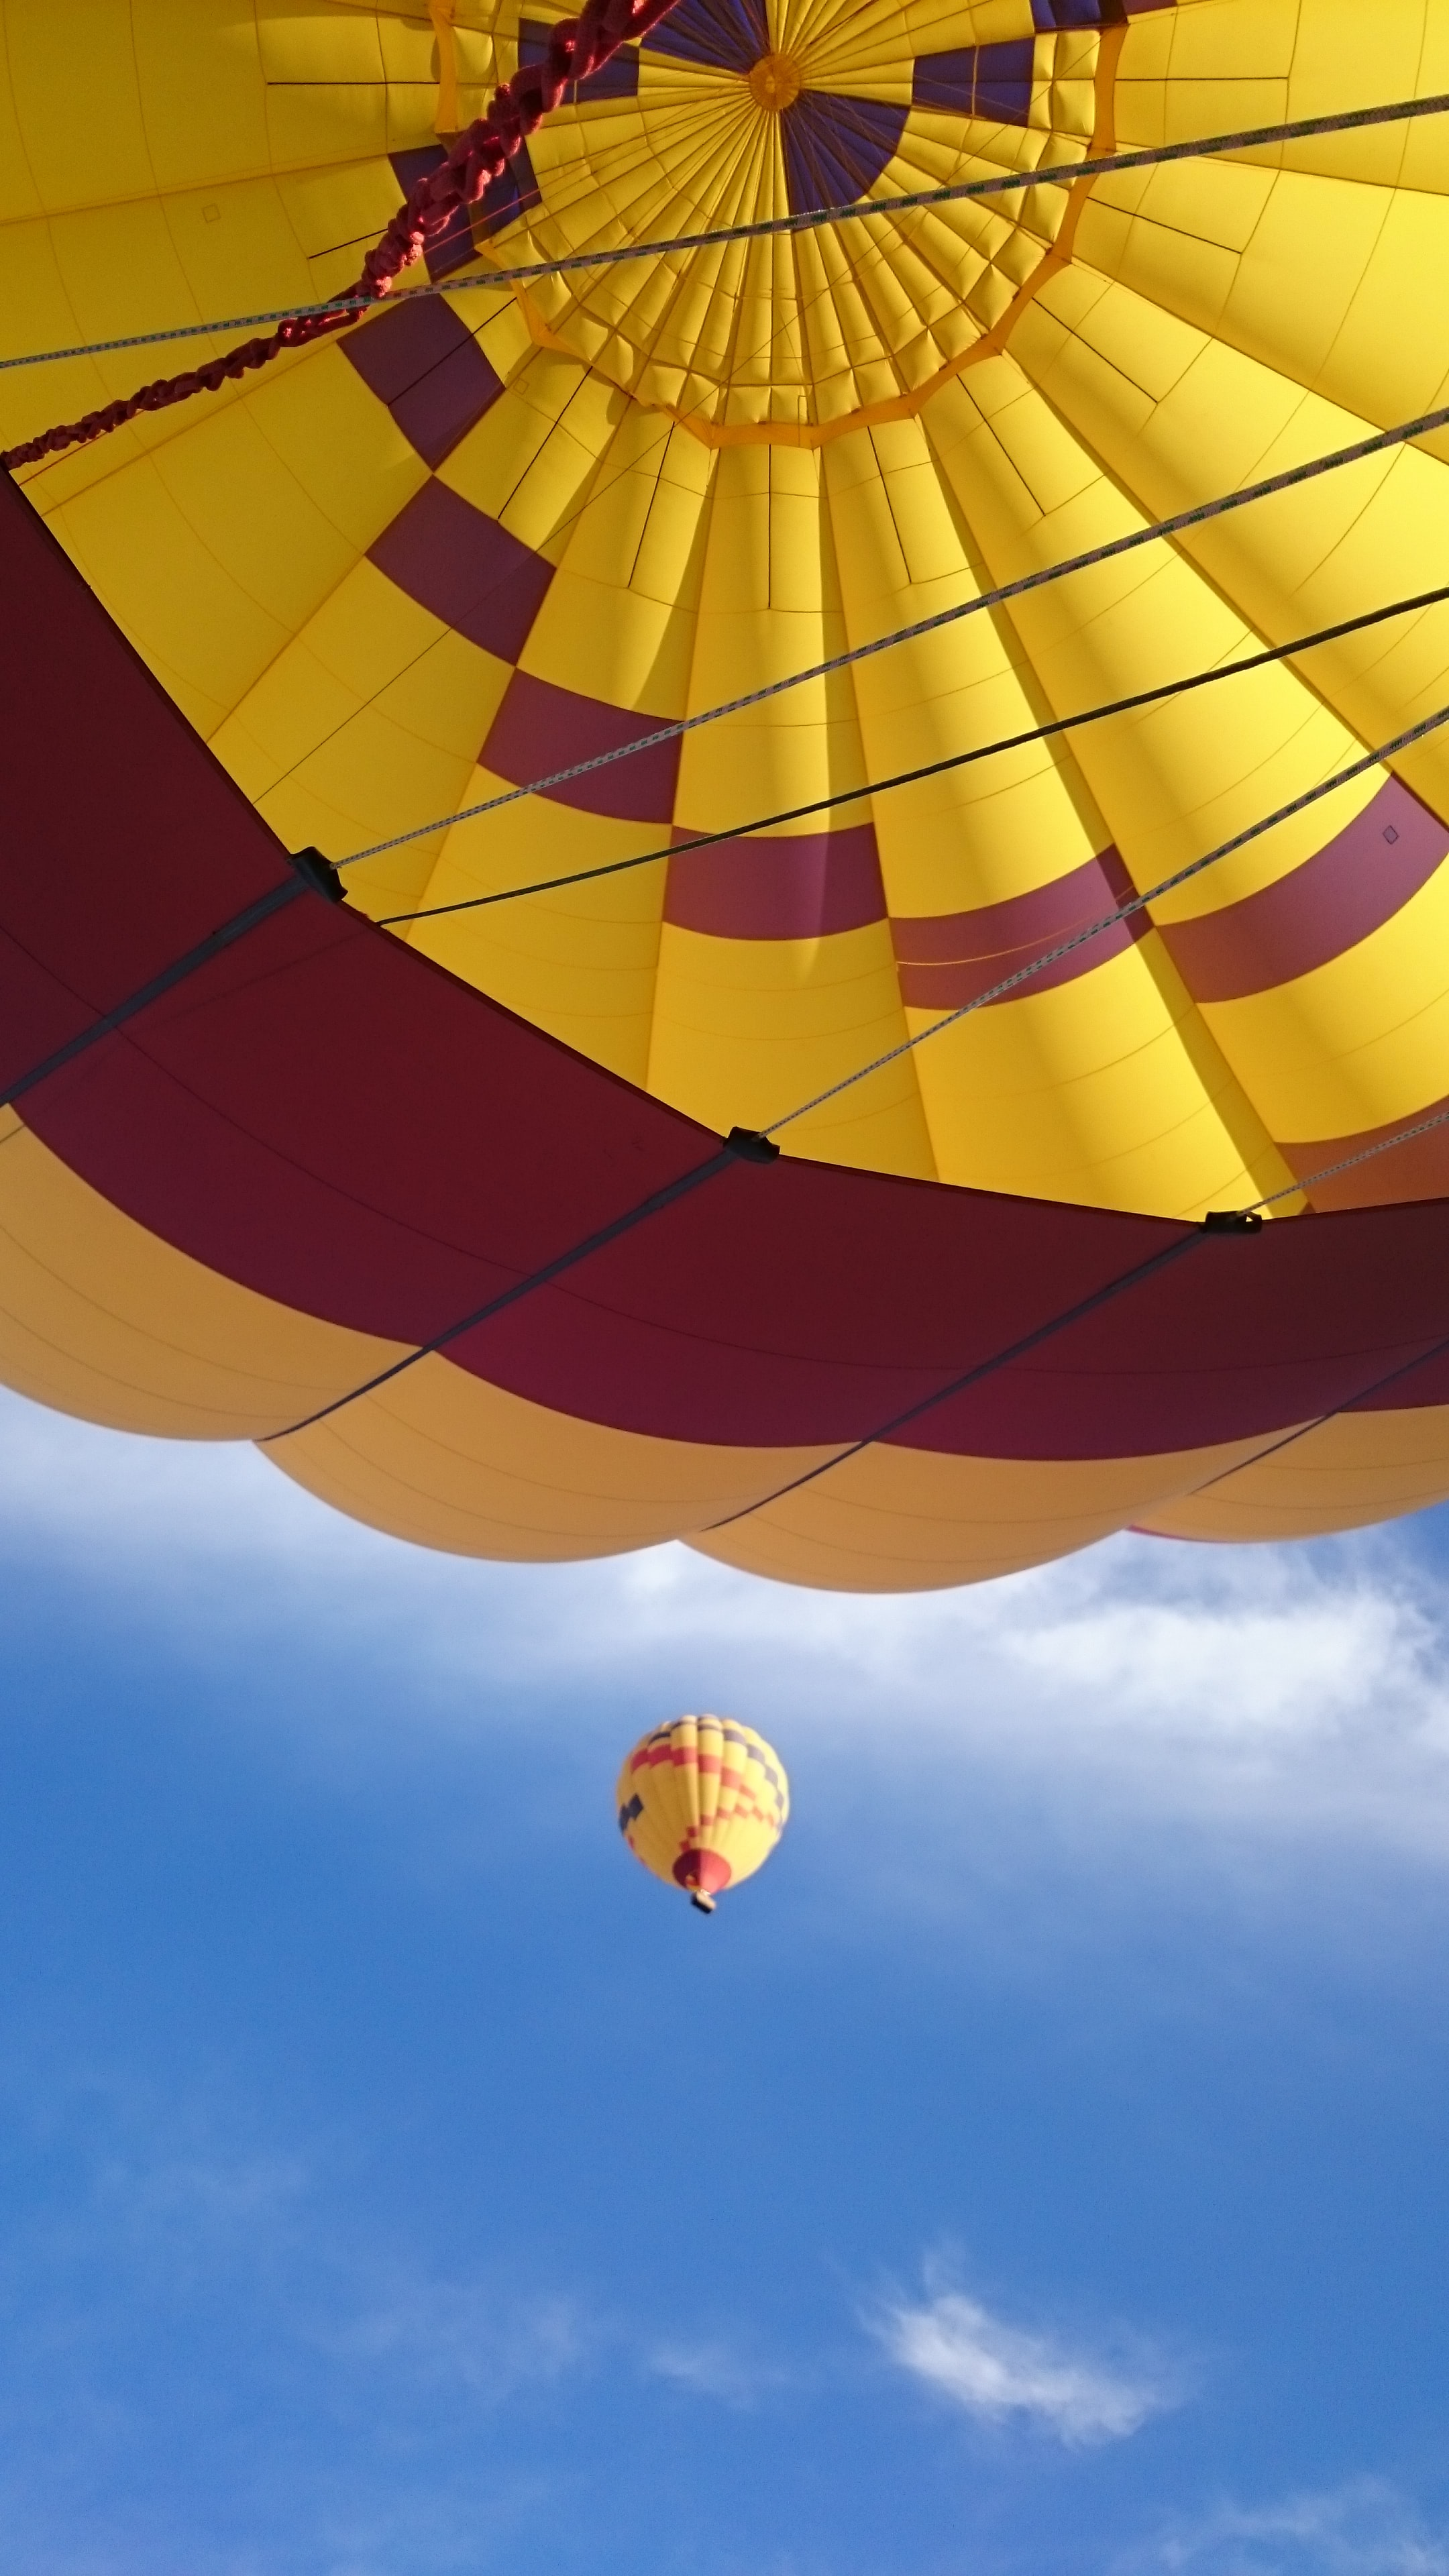 low angle photograph of yellow and red hot air balloon